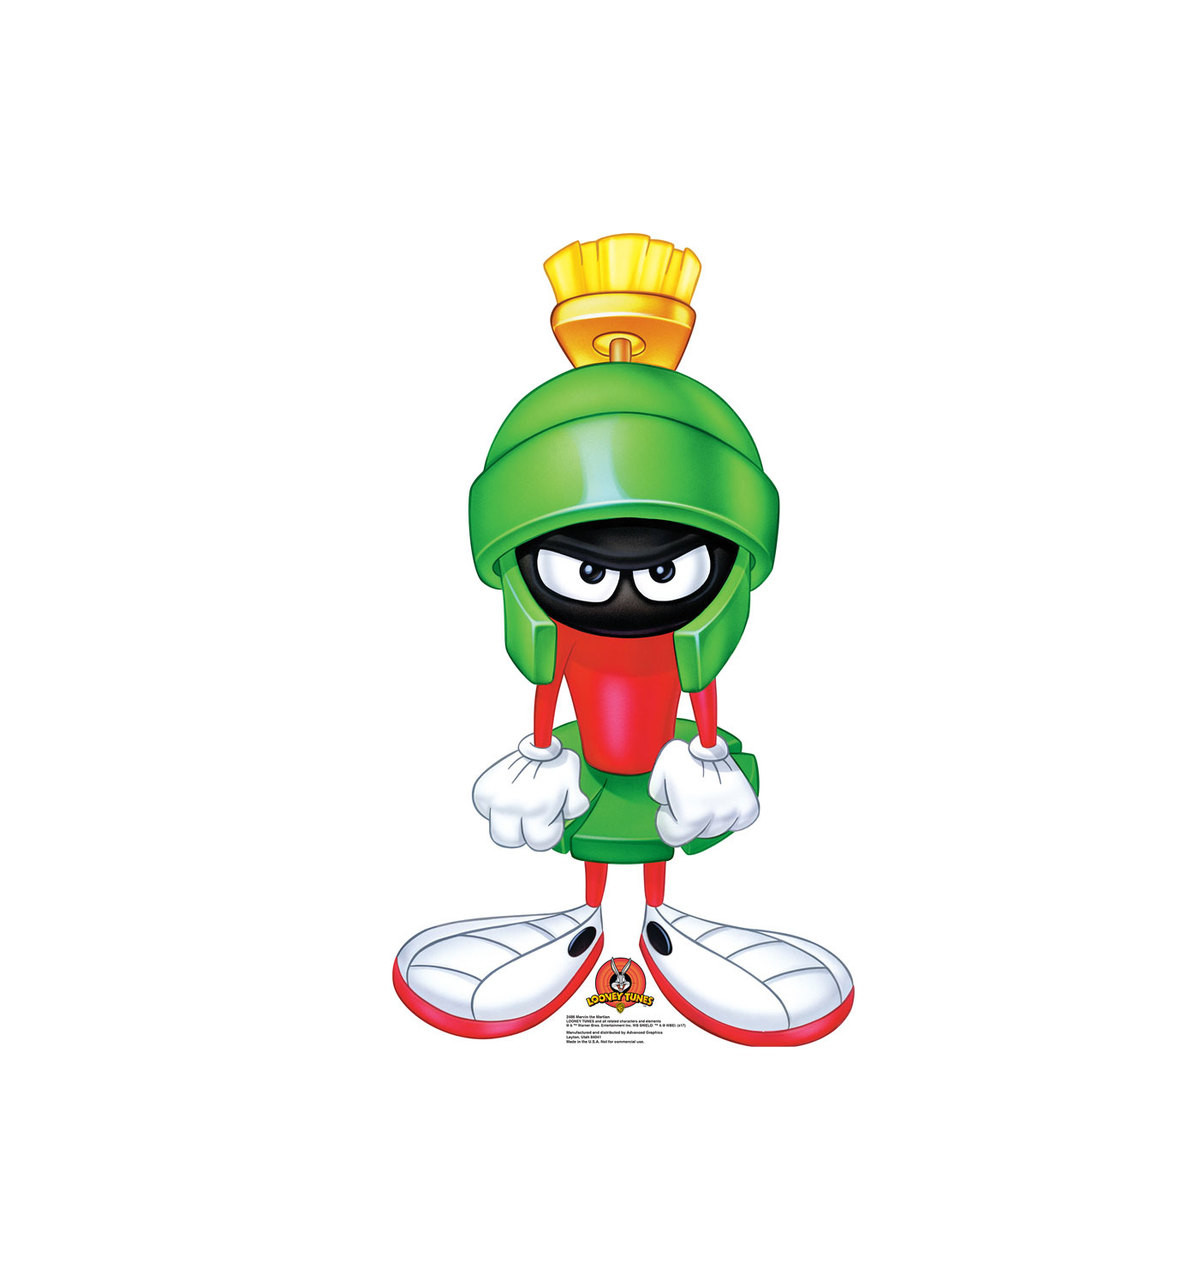 Marvin the Martian Cardboard Cutout